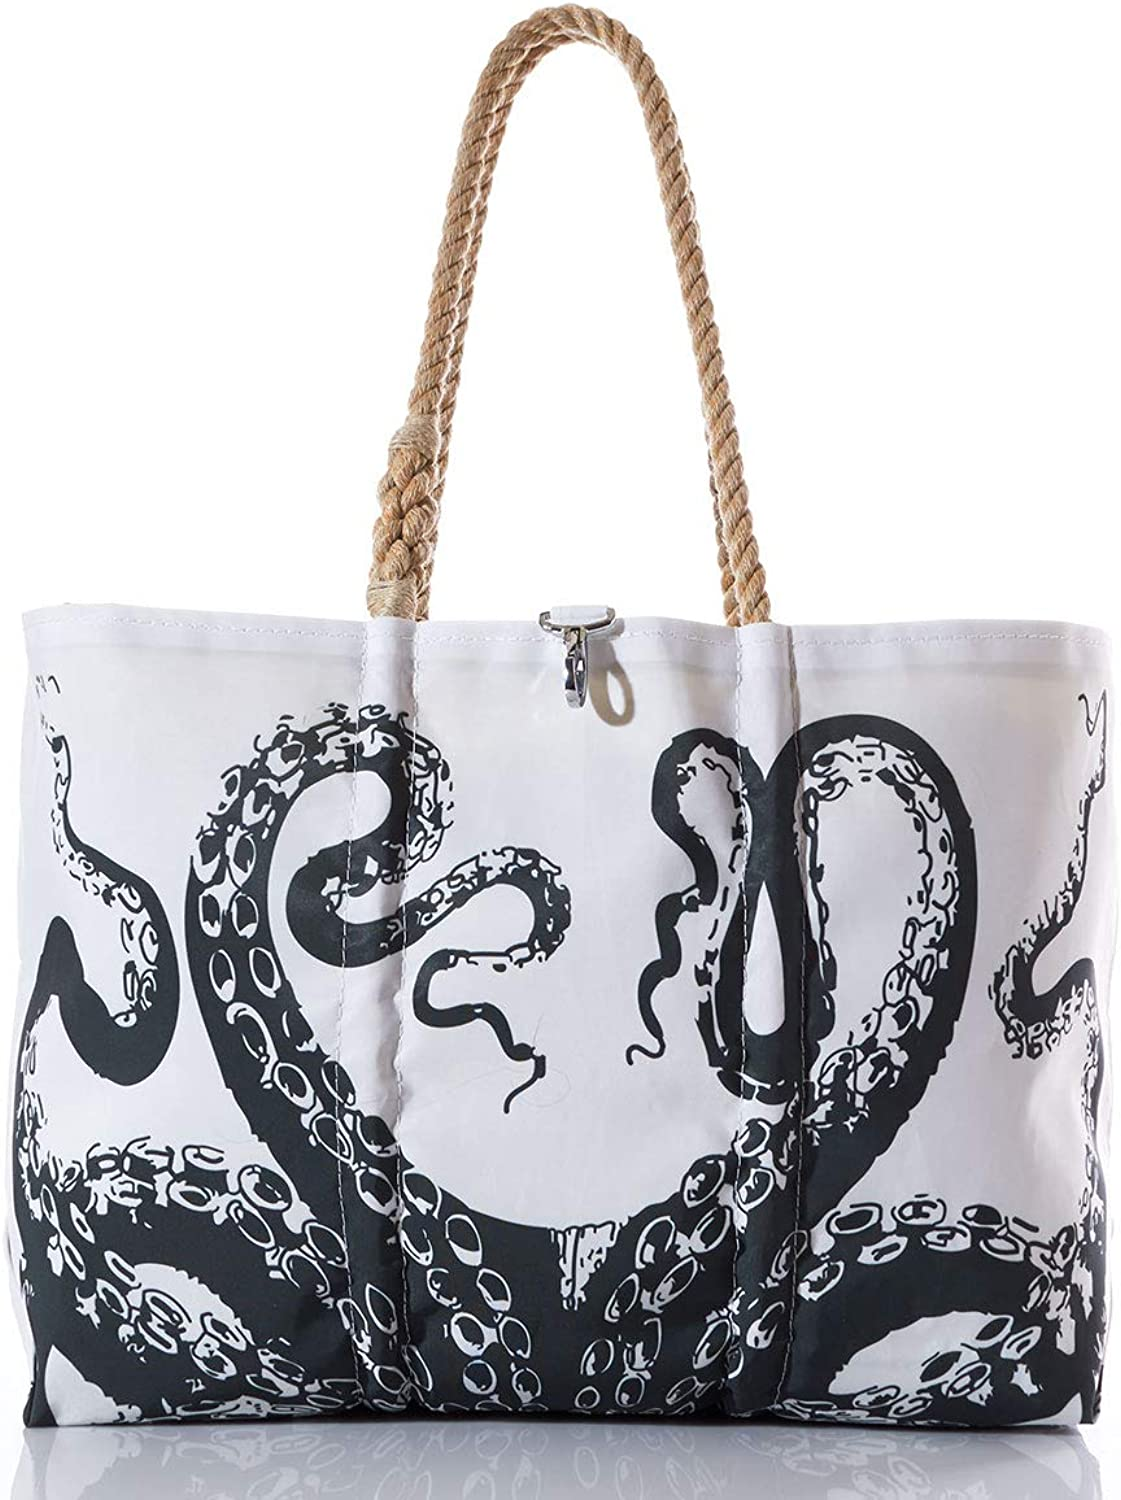 Sea Bags Recycled Sail Cloth Octopus Tote